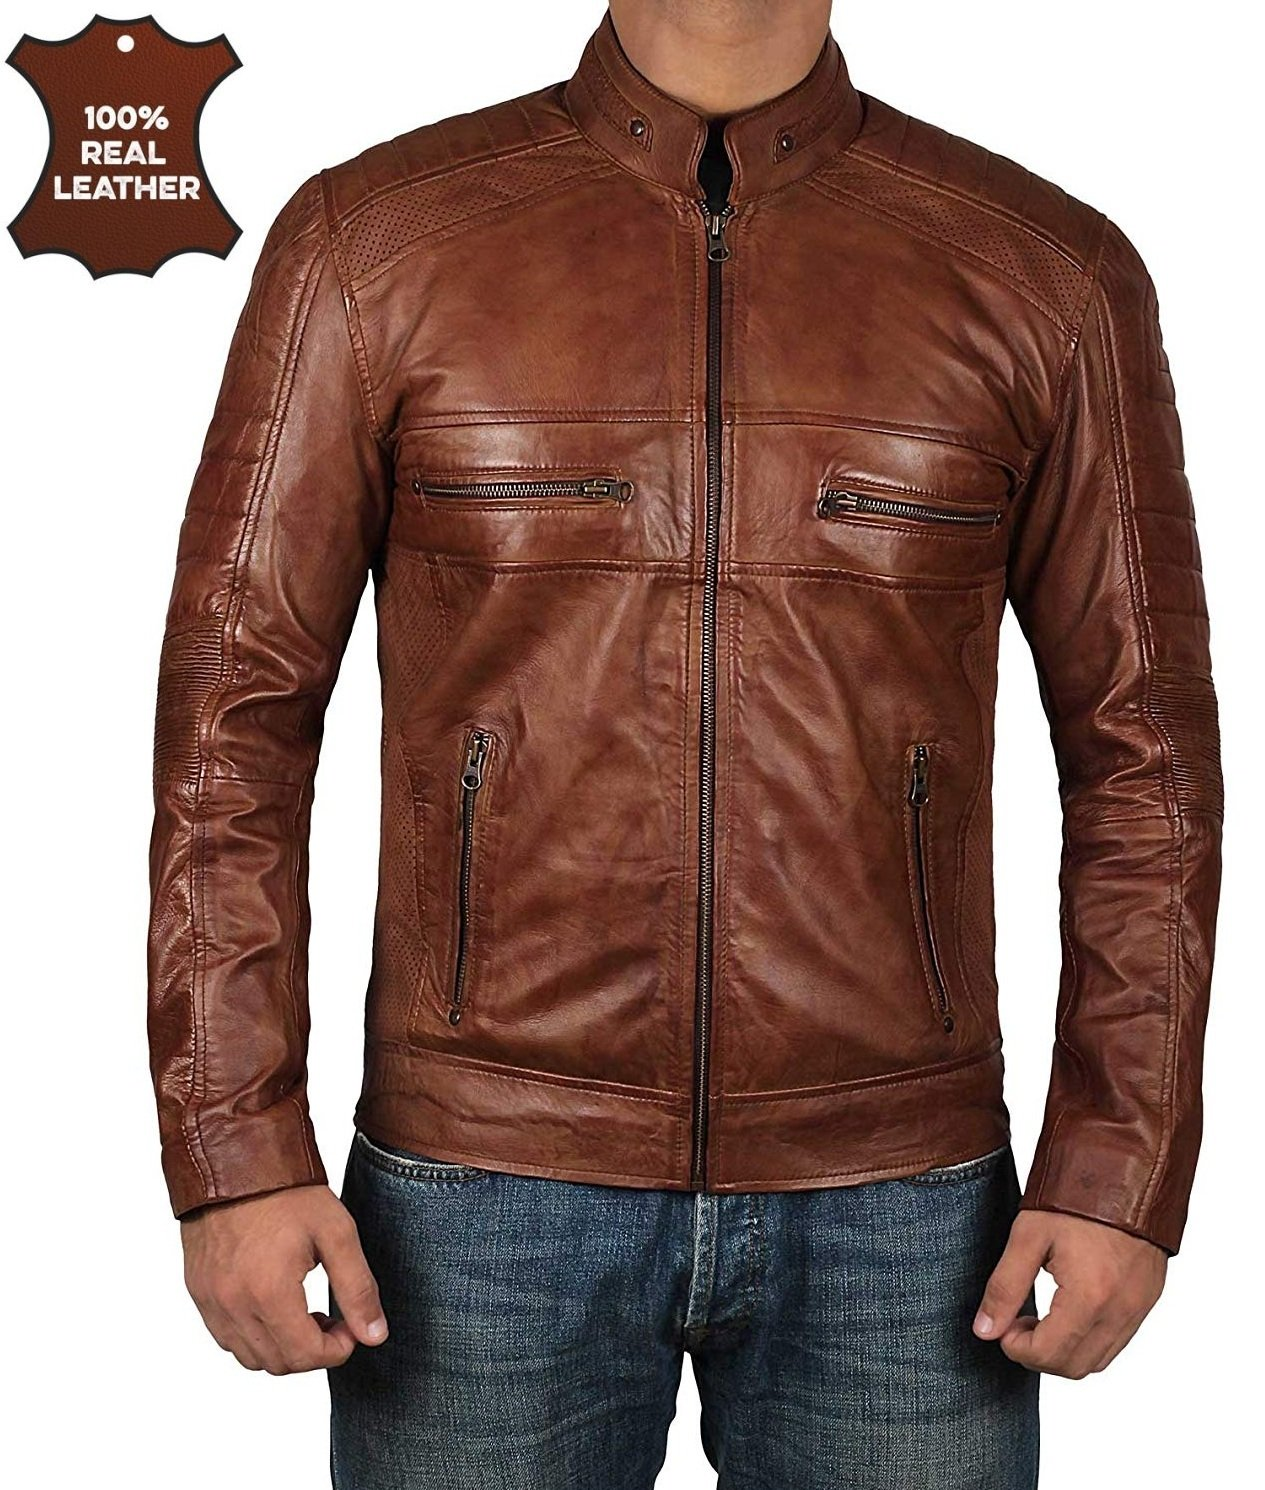 Decrum Moto Leather Jacket Men - Brown Quilted Mens Leather Jackets - Austin L by Decrum